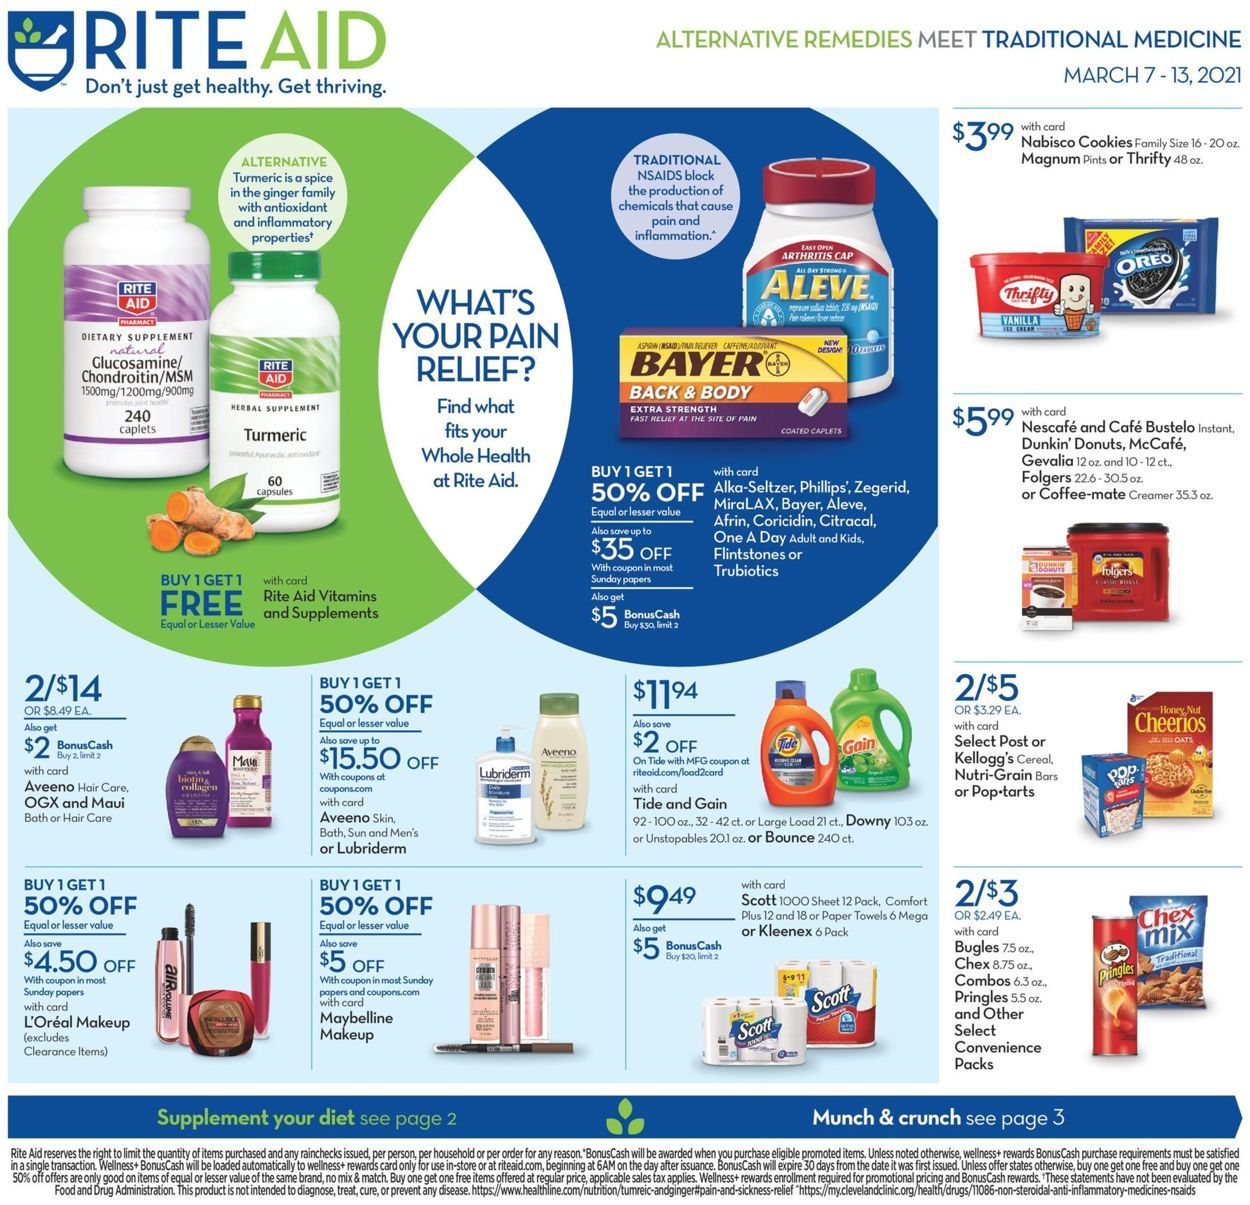 Rite Aid Weekly Ad Mar 7 13 2021 In 2021 Online Coupons Codes Online Coupons Weekly Ads